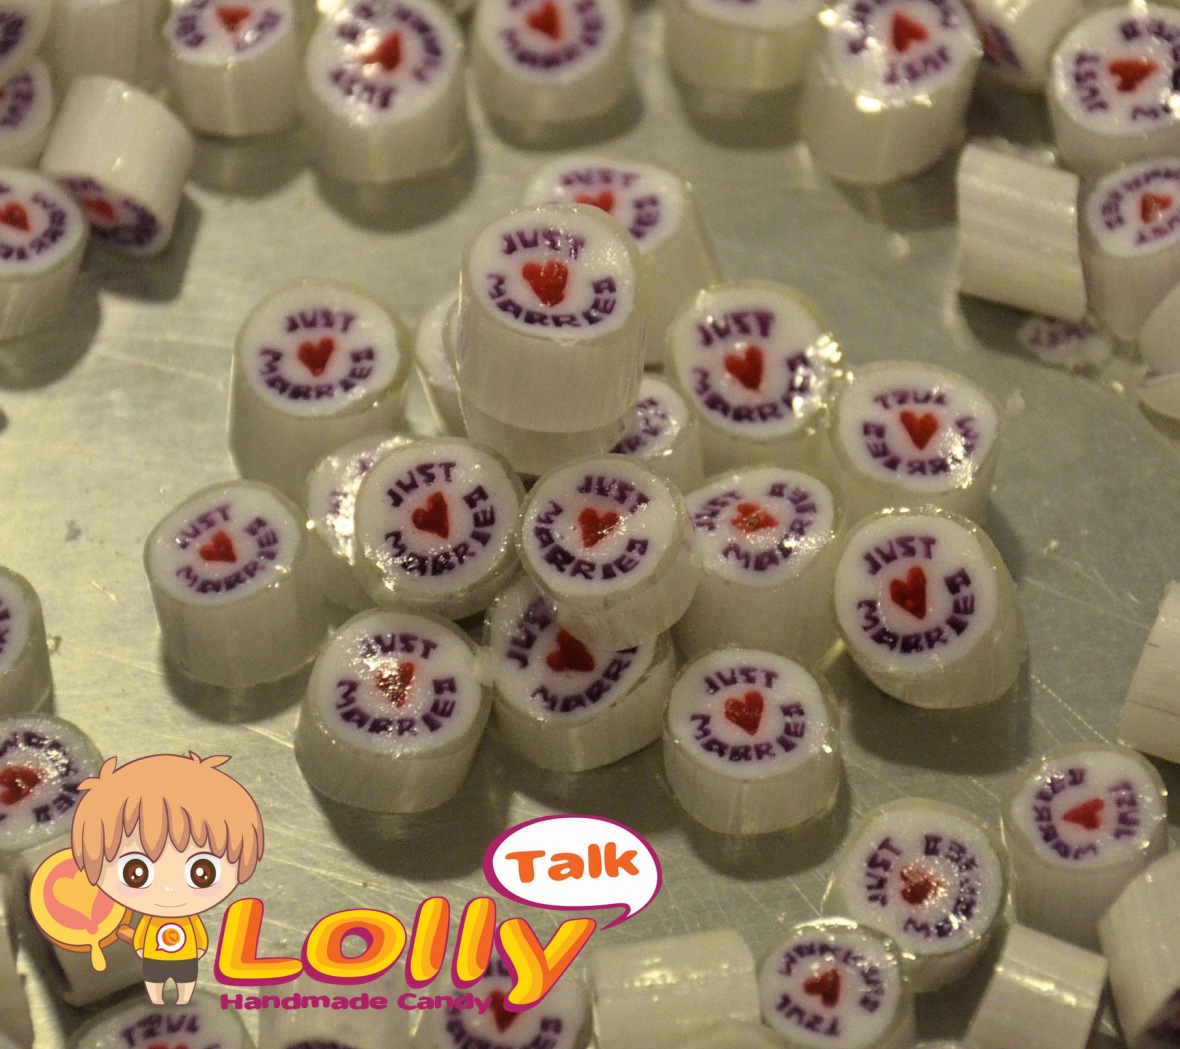 LollyTalk's customised wedding candy